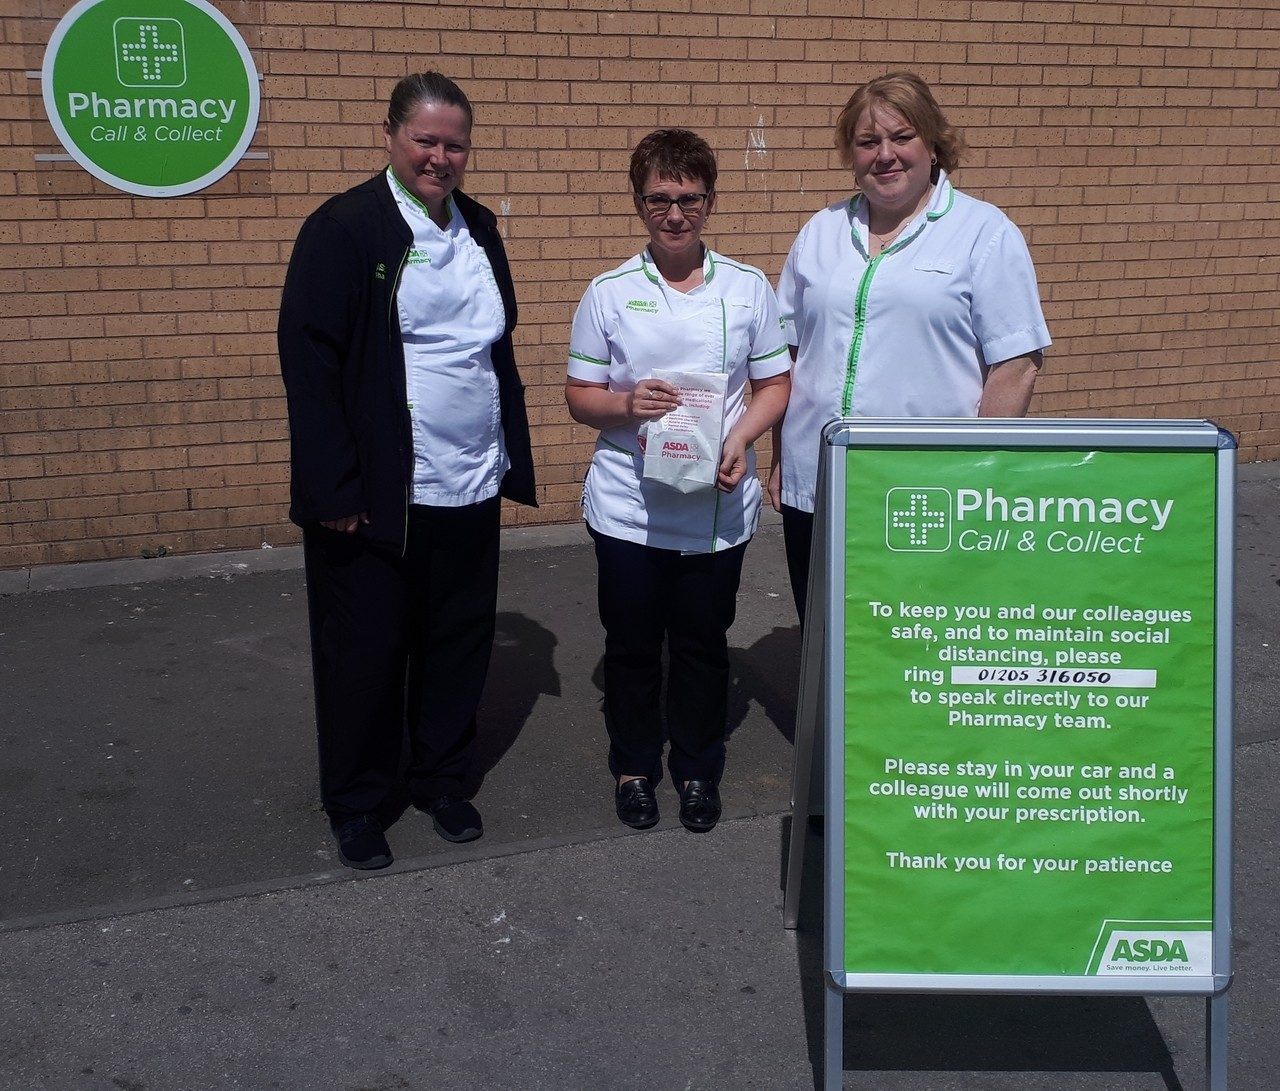 Asda Boston pharmacy offers Call and Collect service | Asda Boston